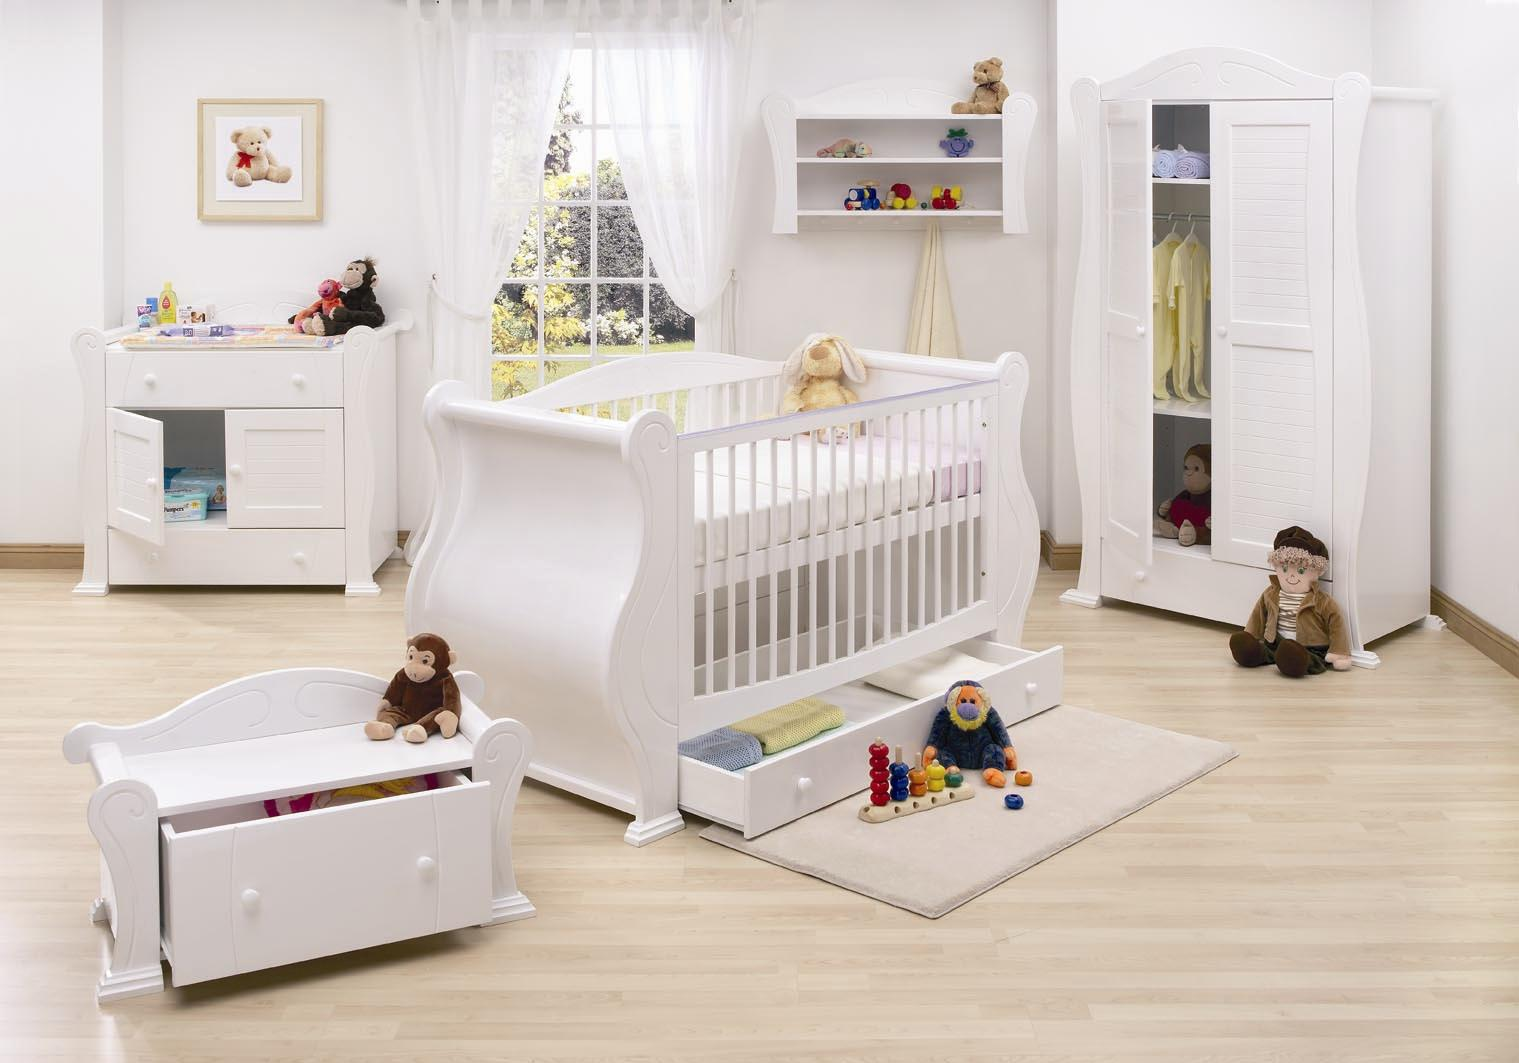 baby bedroom furniture sets image of: baby room furniture sets design  UYMPFHV